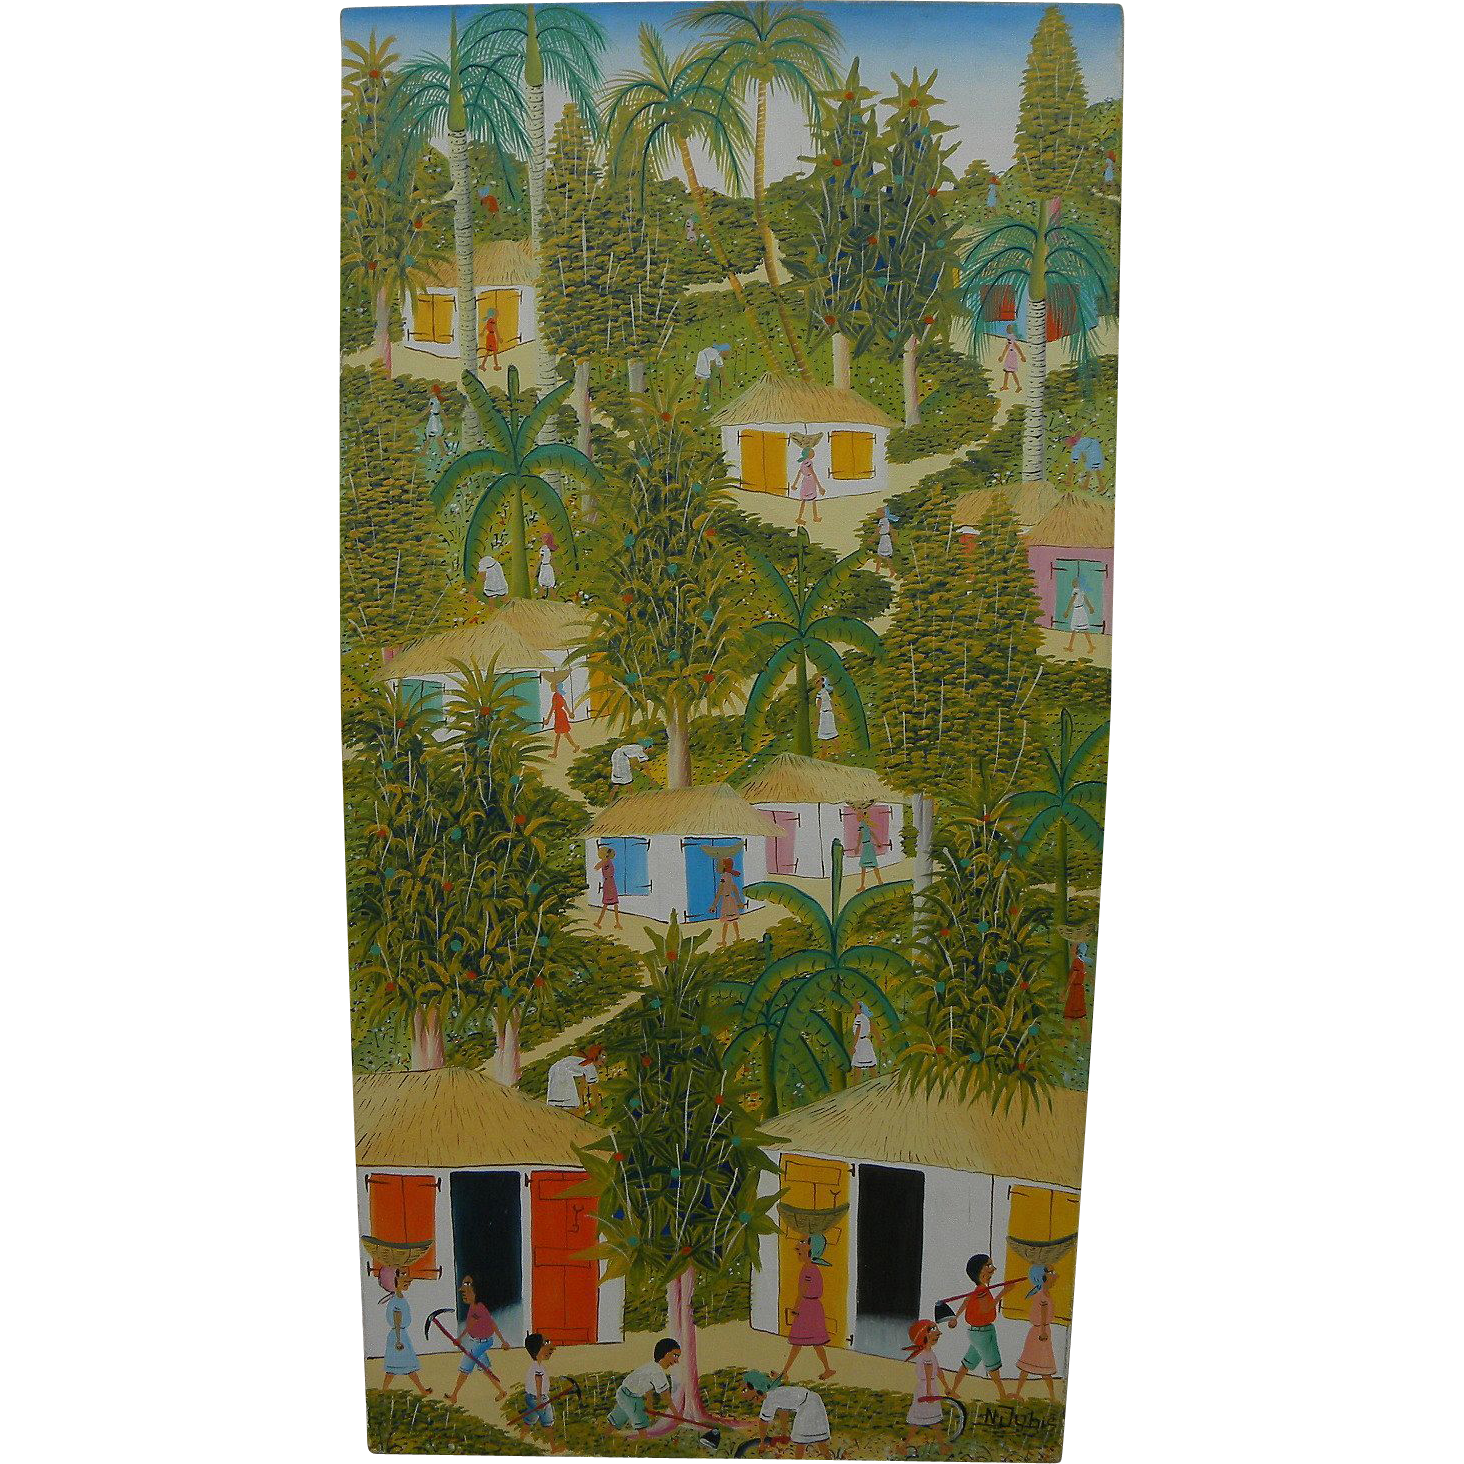 Haitian Art naive style painting of figures in a country landscape signed N. Jubie